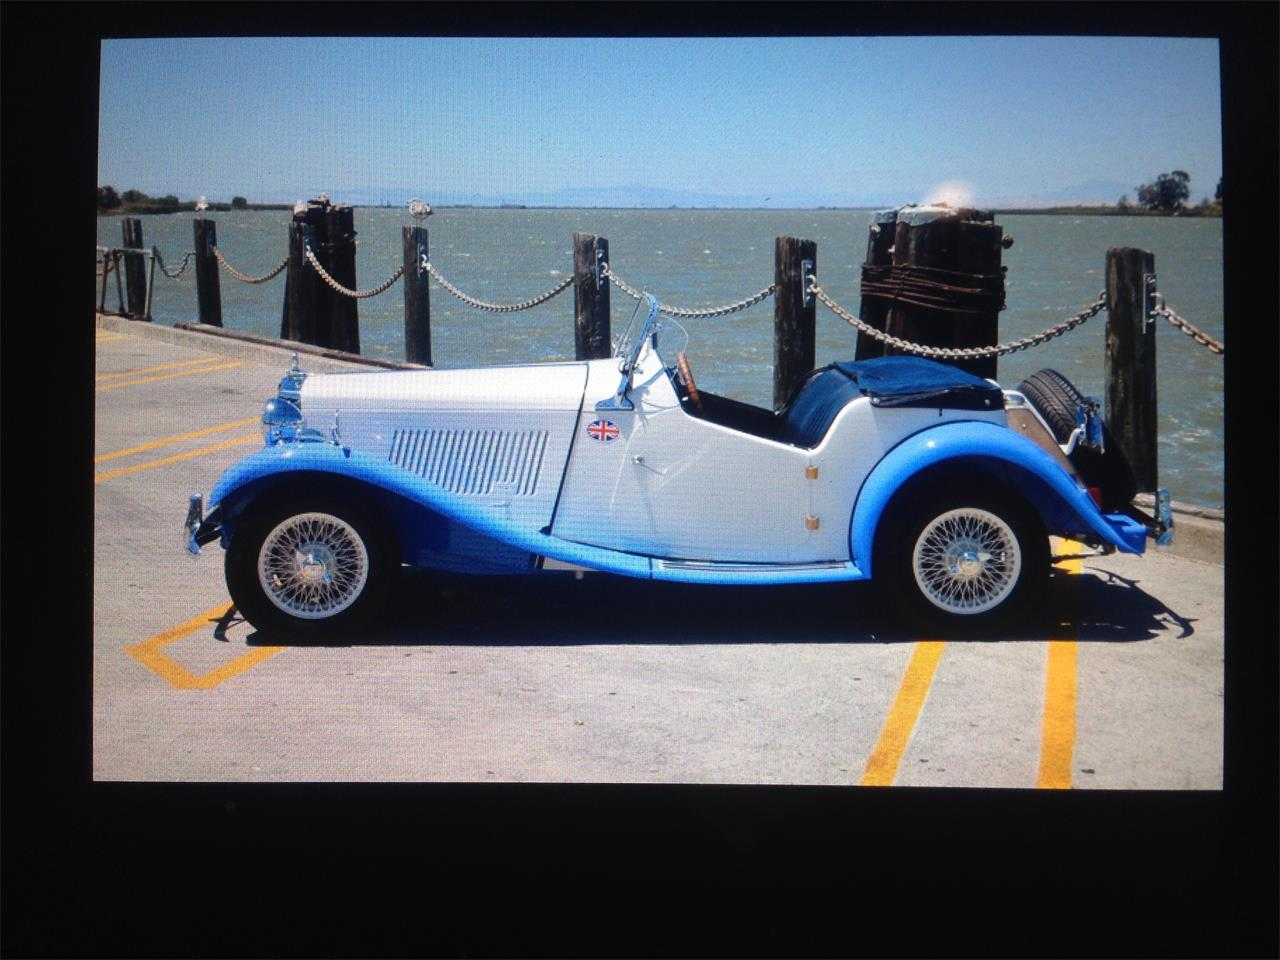 Large Picture of Classic '52 MG TD Offered by a Private Seller - FTY3